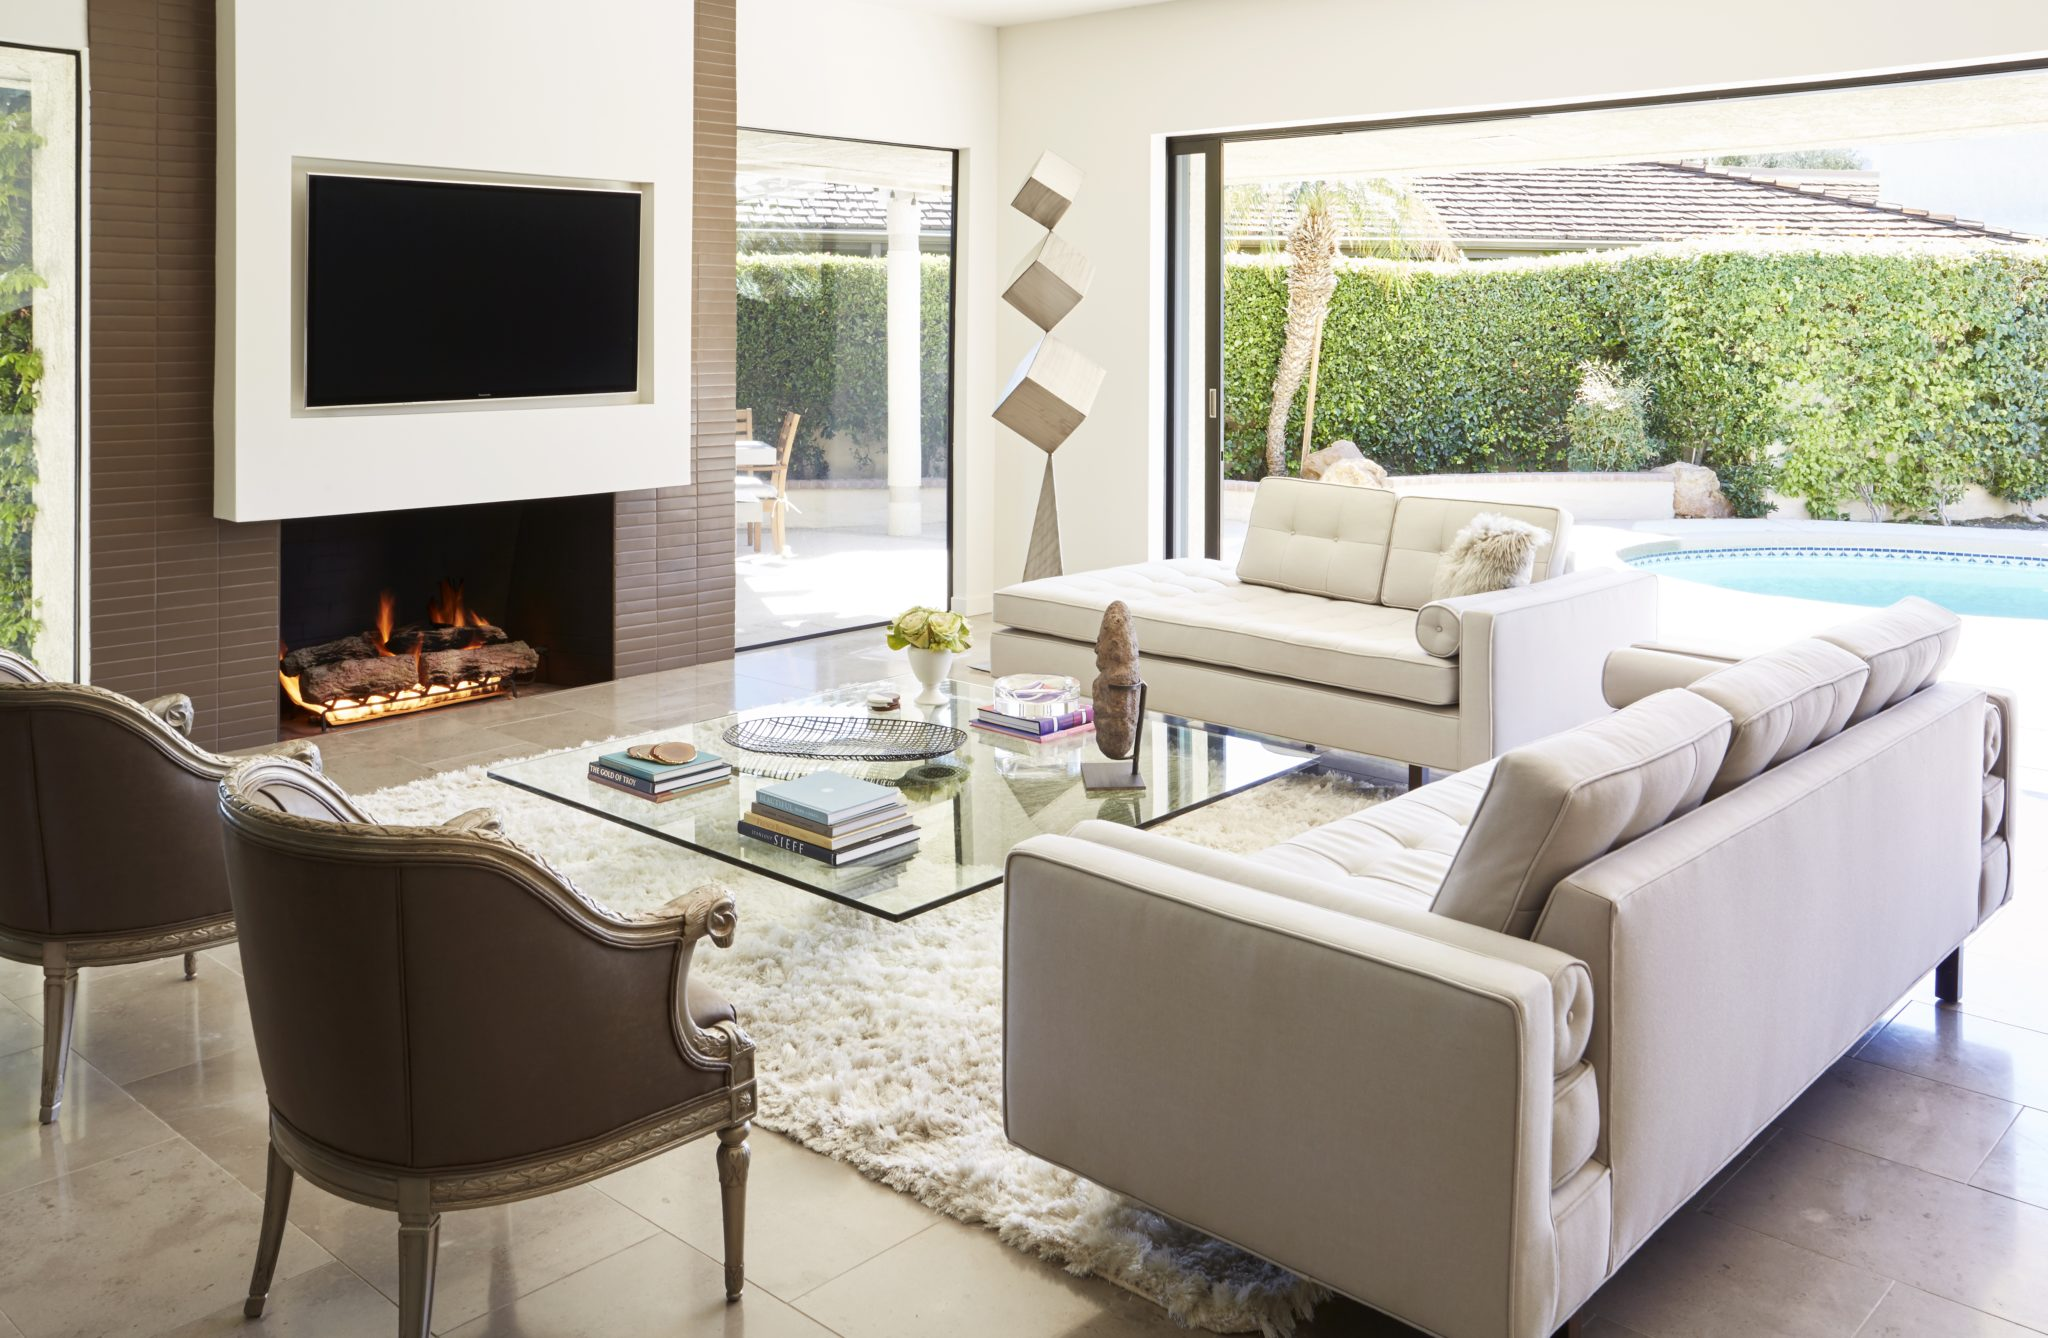 Palm Springs Living Room, indoor/outdoor living with modern tiled fireplace. by Lori Gilder Interior Makeovers Inc.